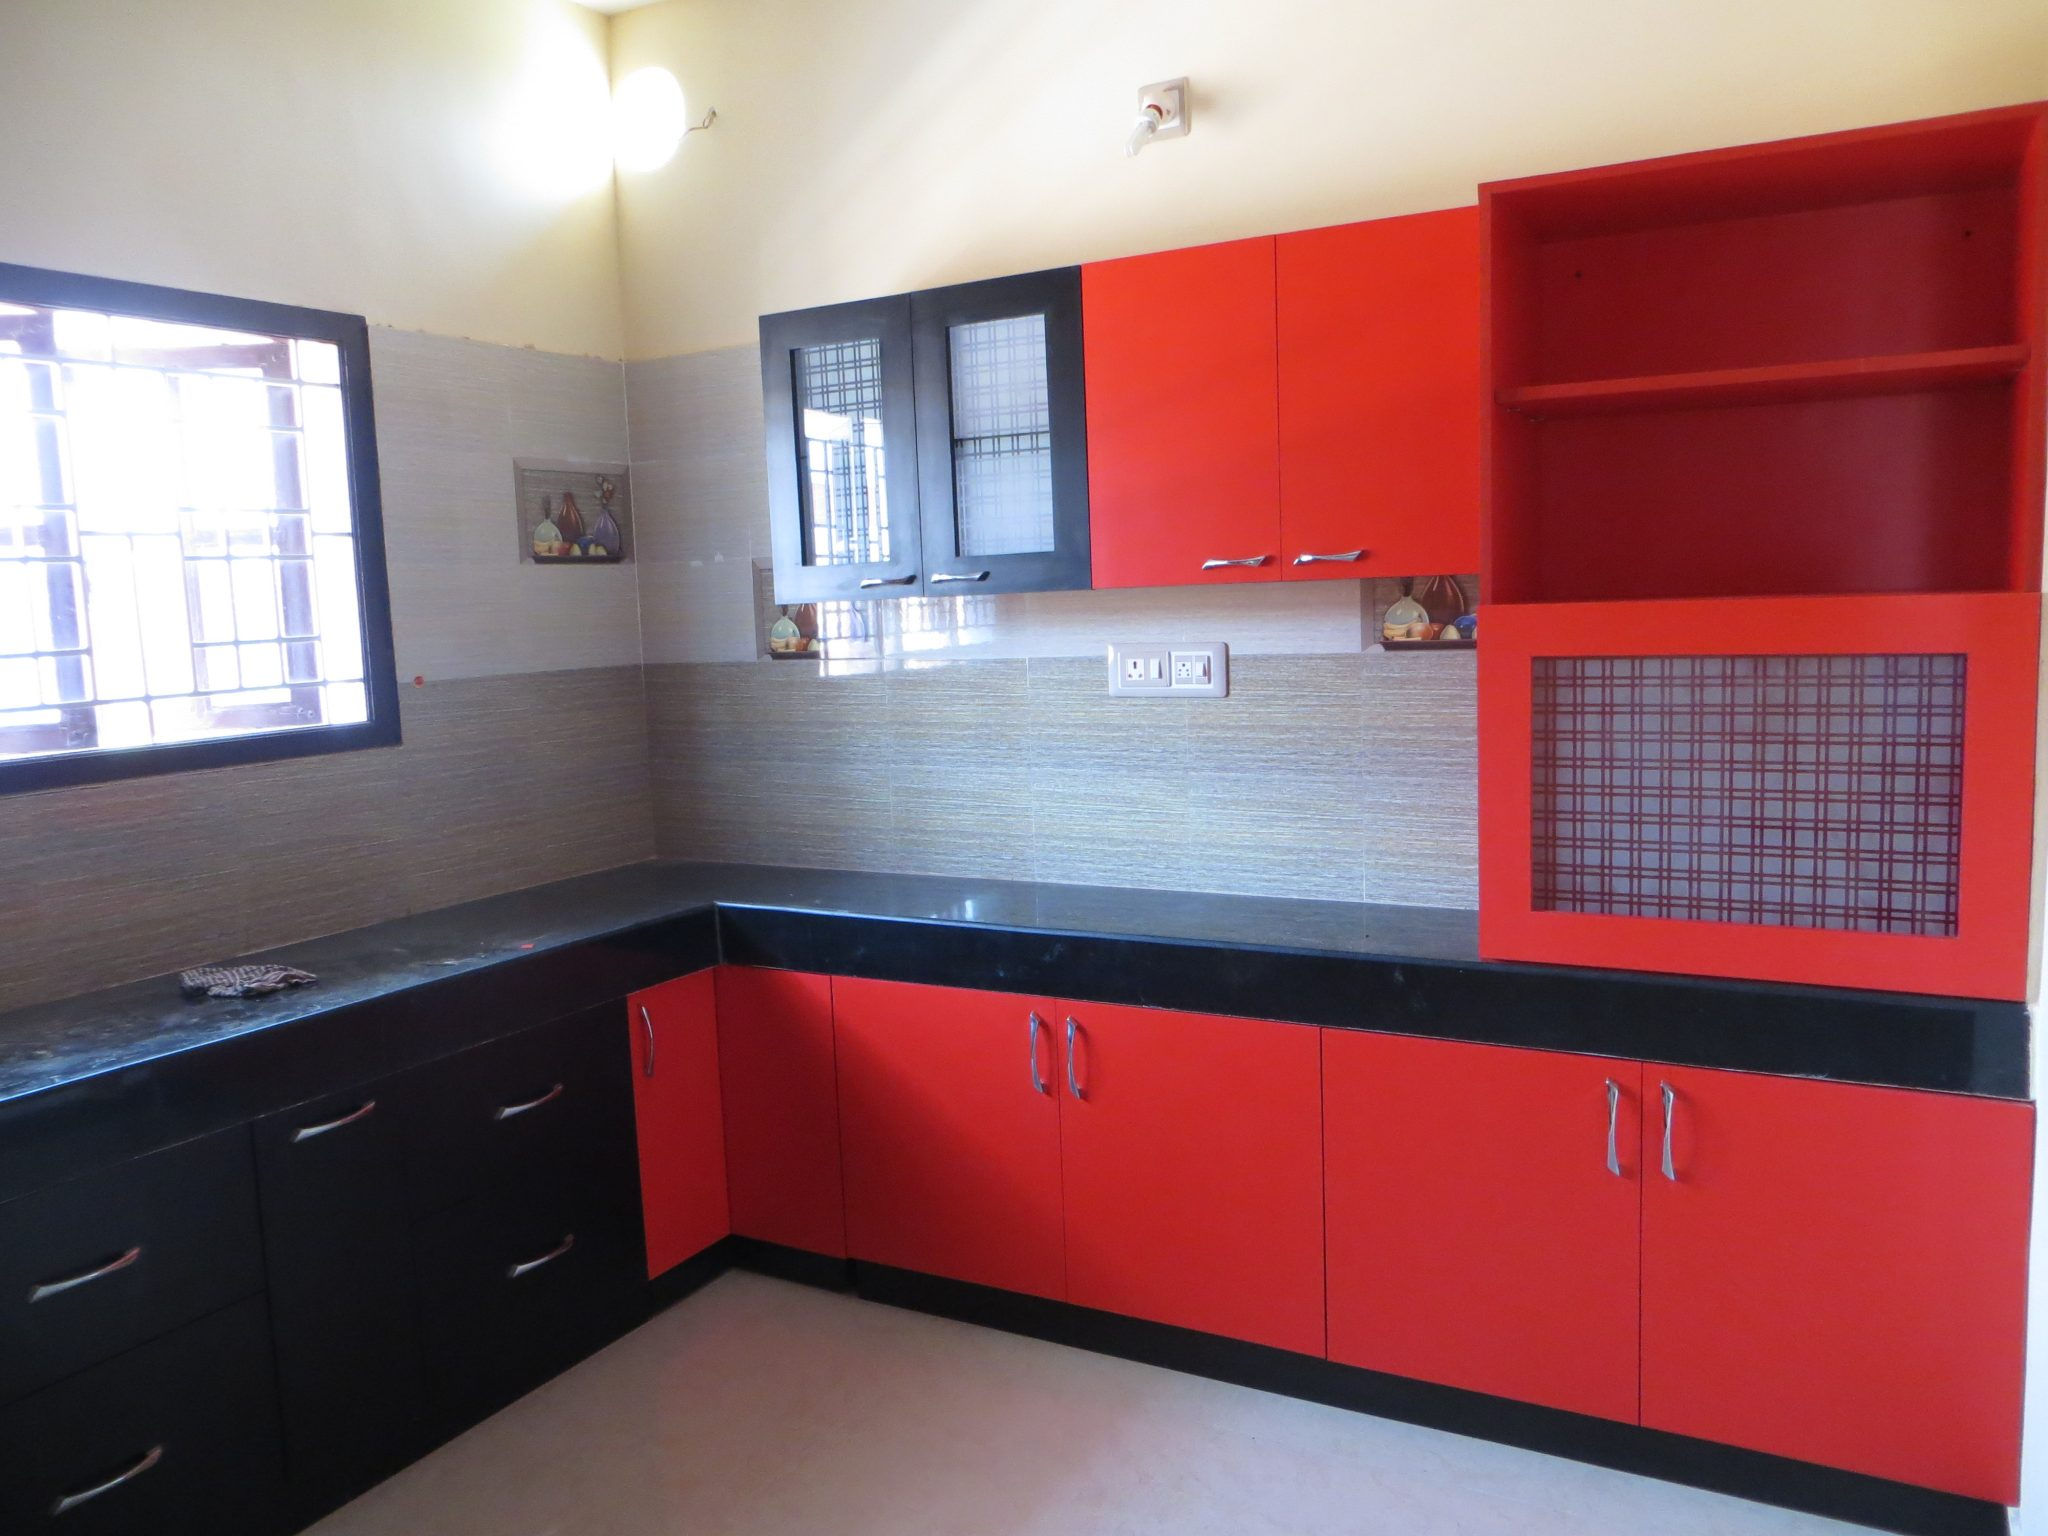 Our Works - Redme Interiors